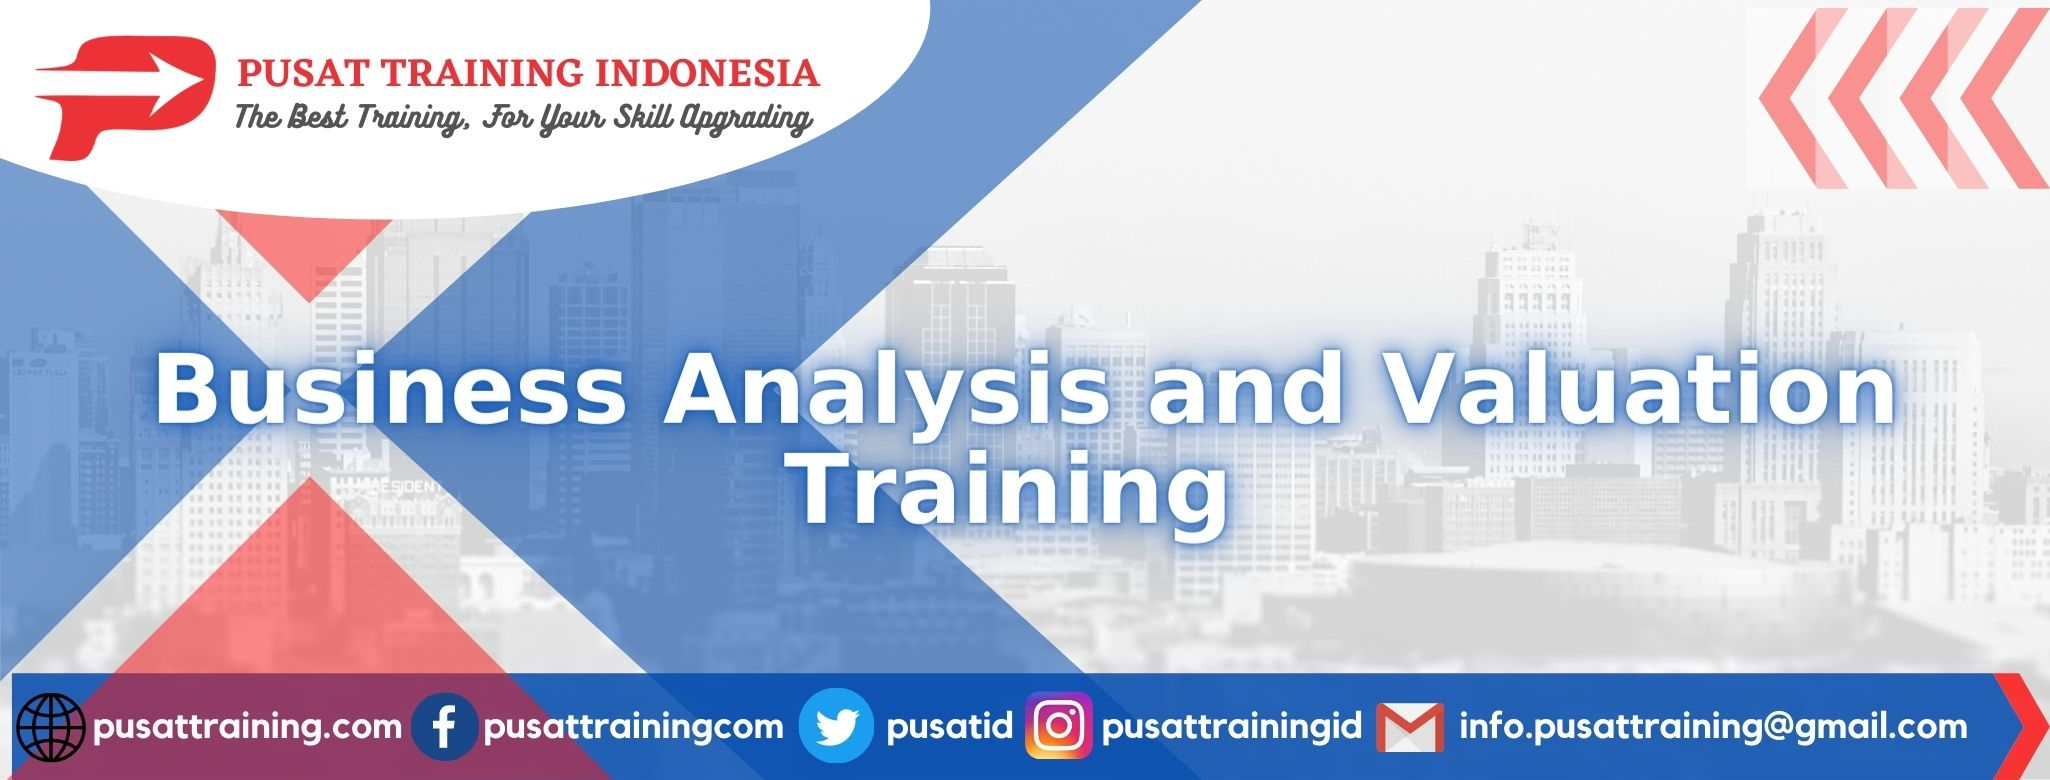 Business-Analysis-and-Valuation-Training